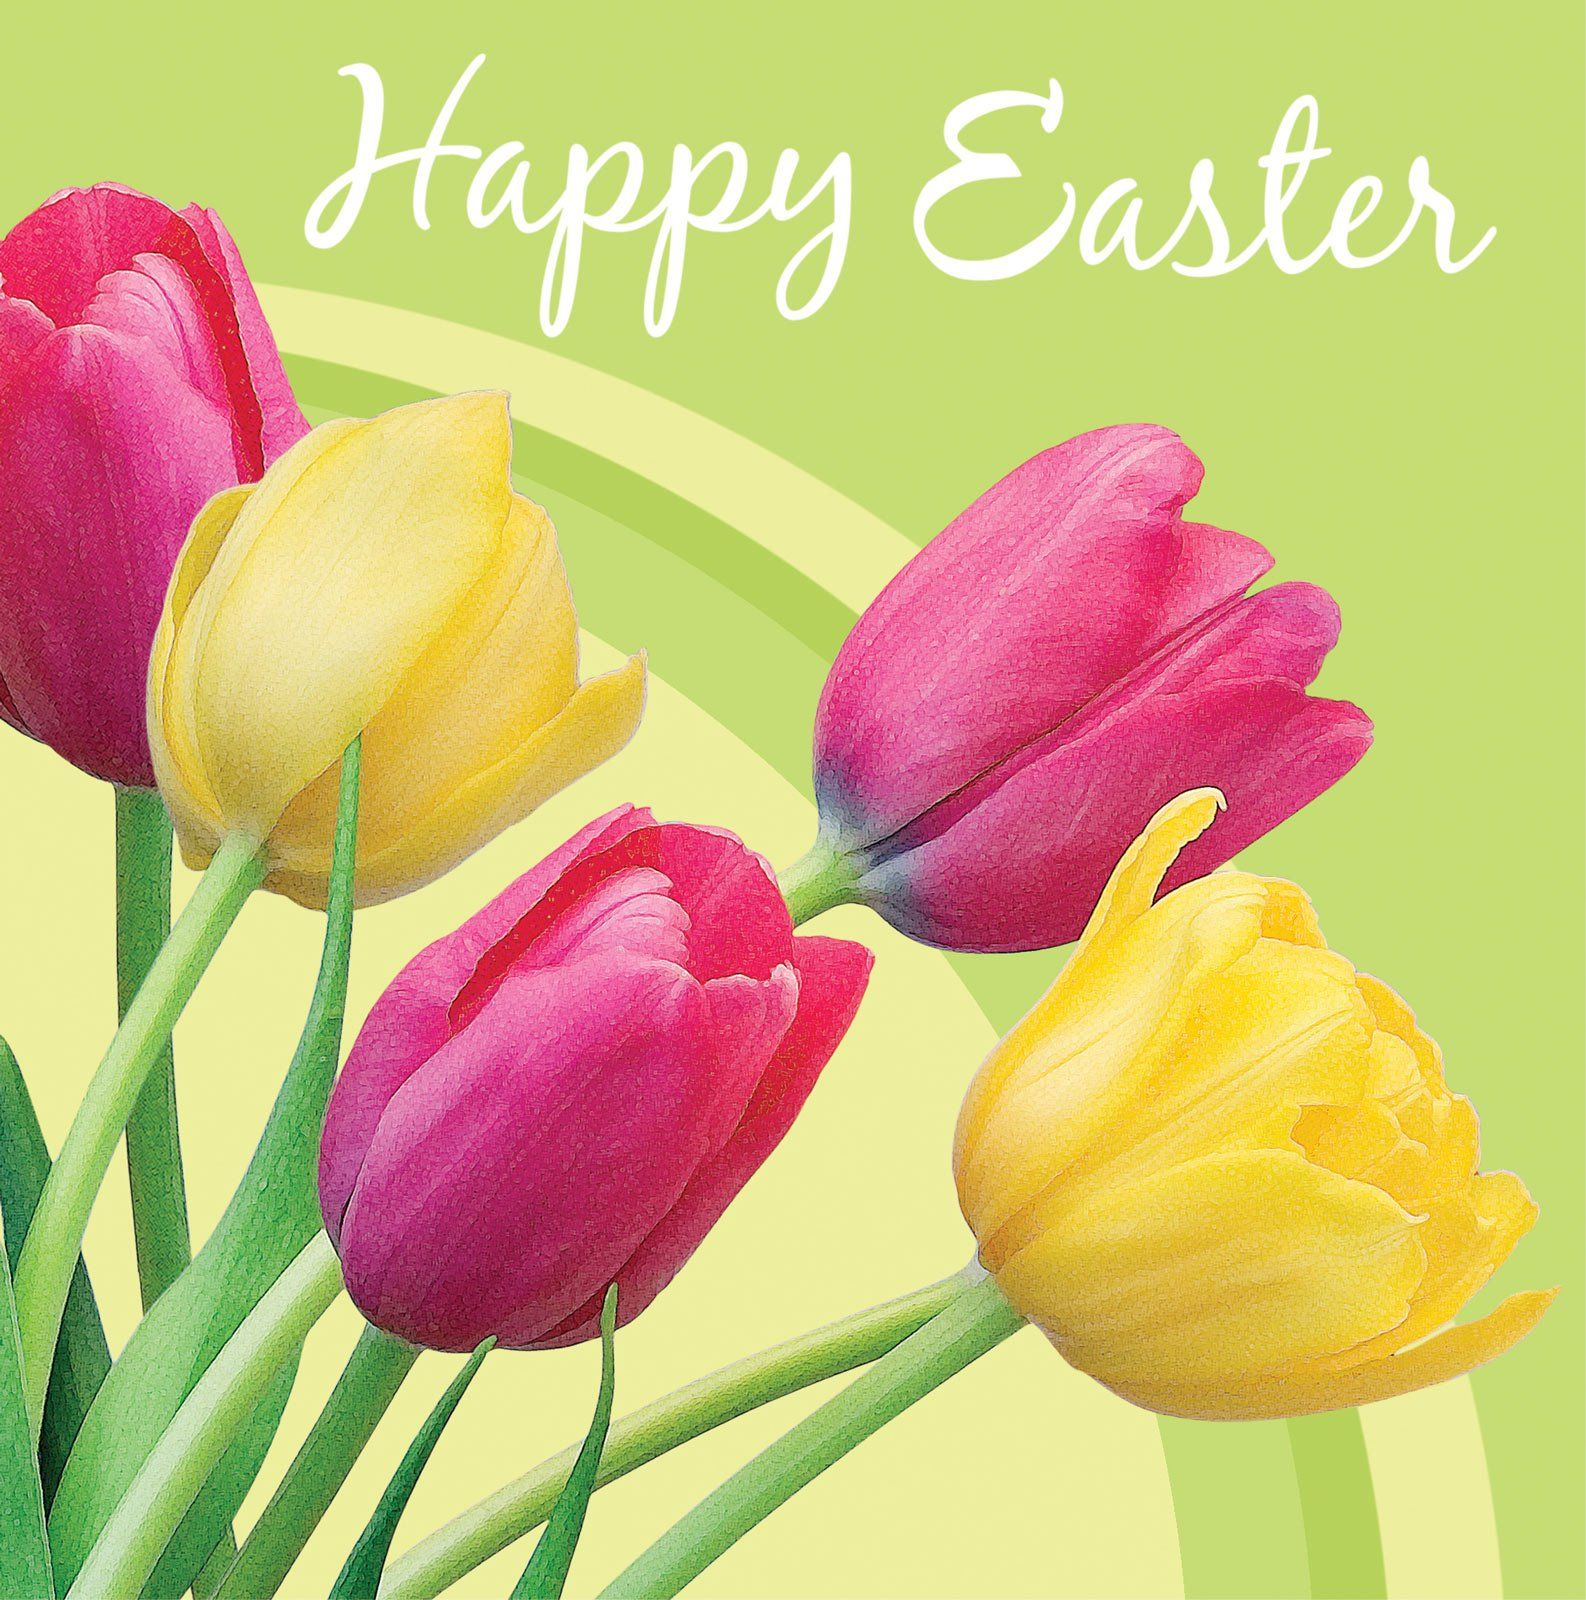 Happy Easter Desktop Backgrounds in 2019 Faith Easter wishes 1586x1600